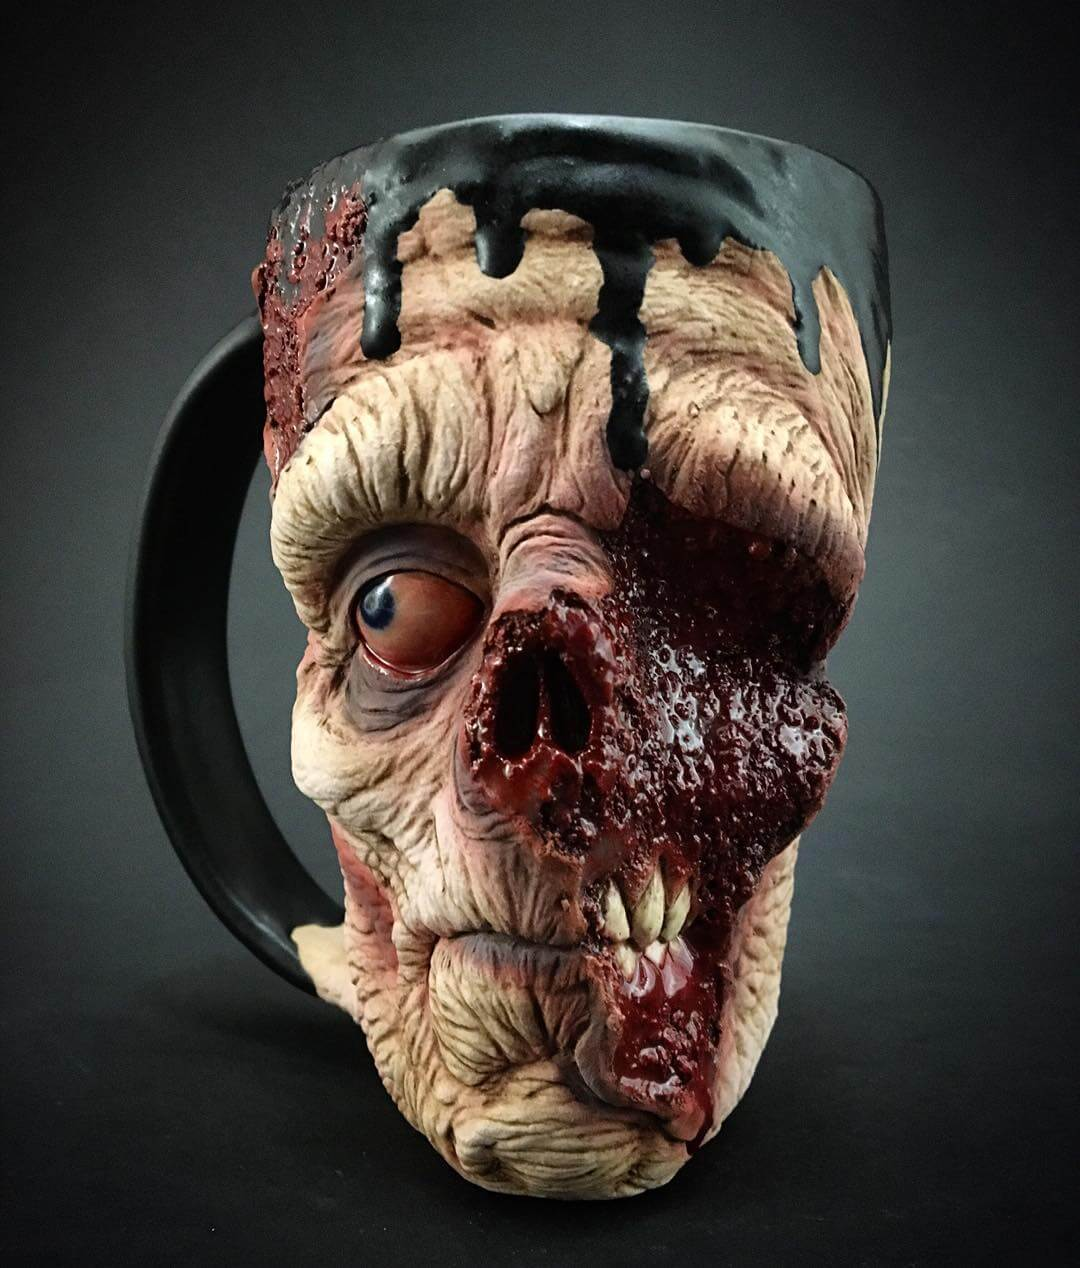 horror-zombie-mug-turkey-meck-fy-8